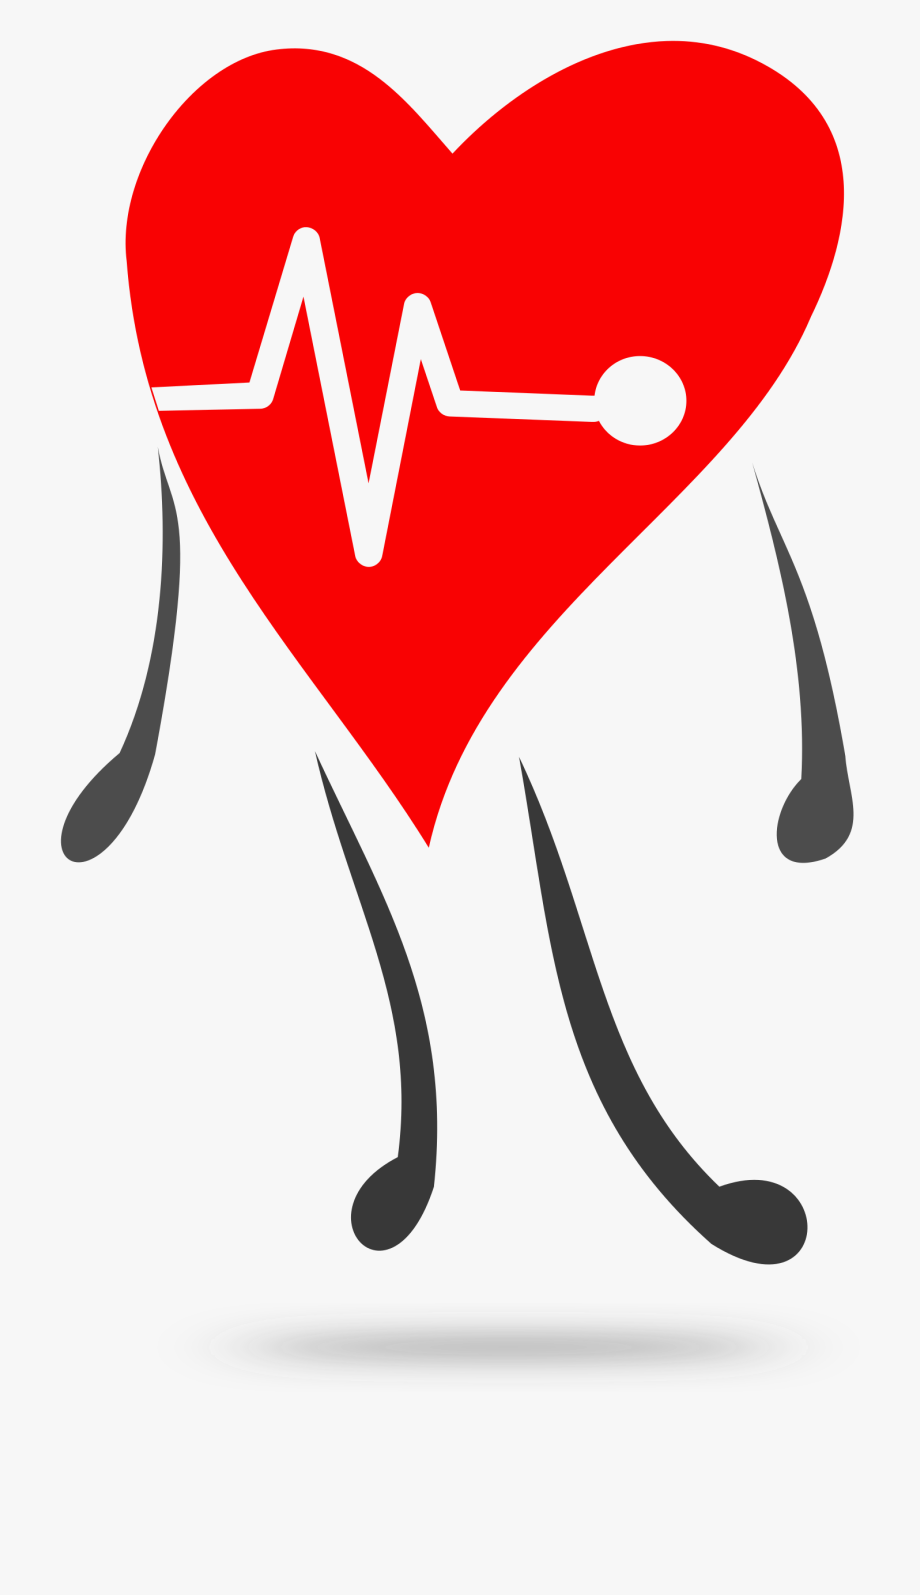 Healthy heart . Heartbeat clipart health symbol